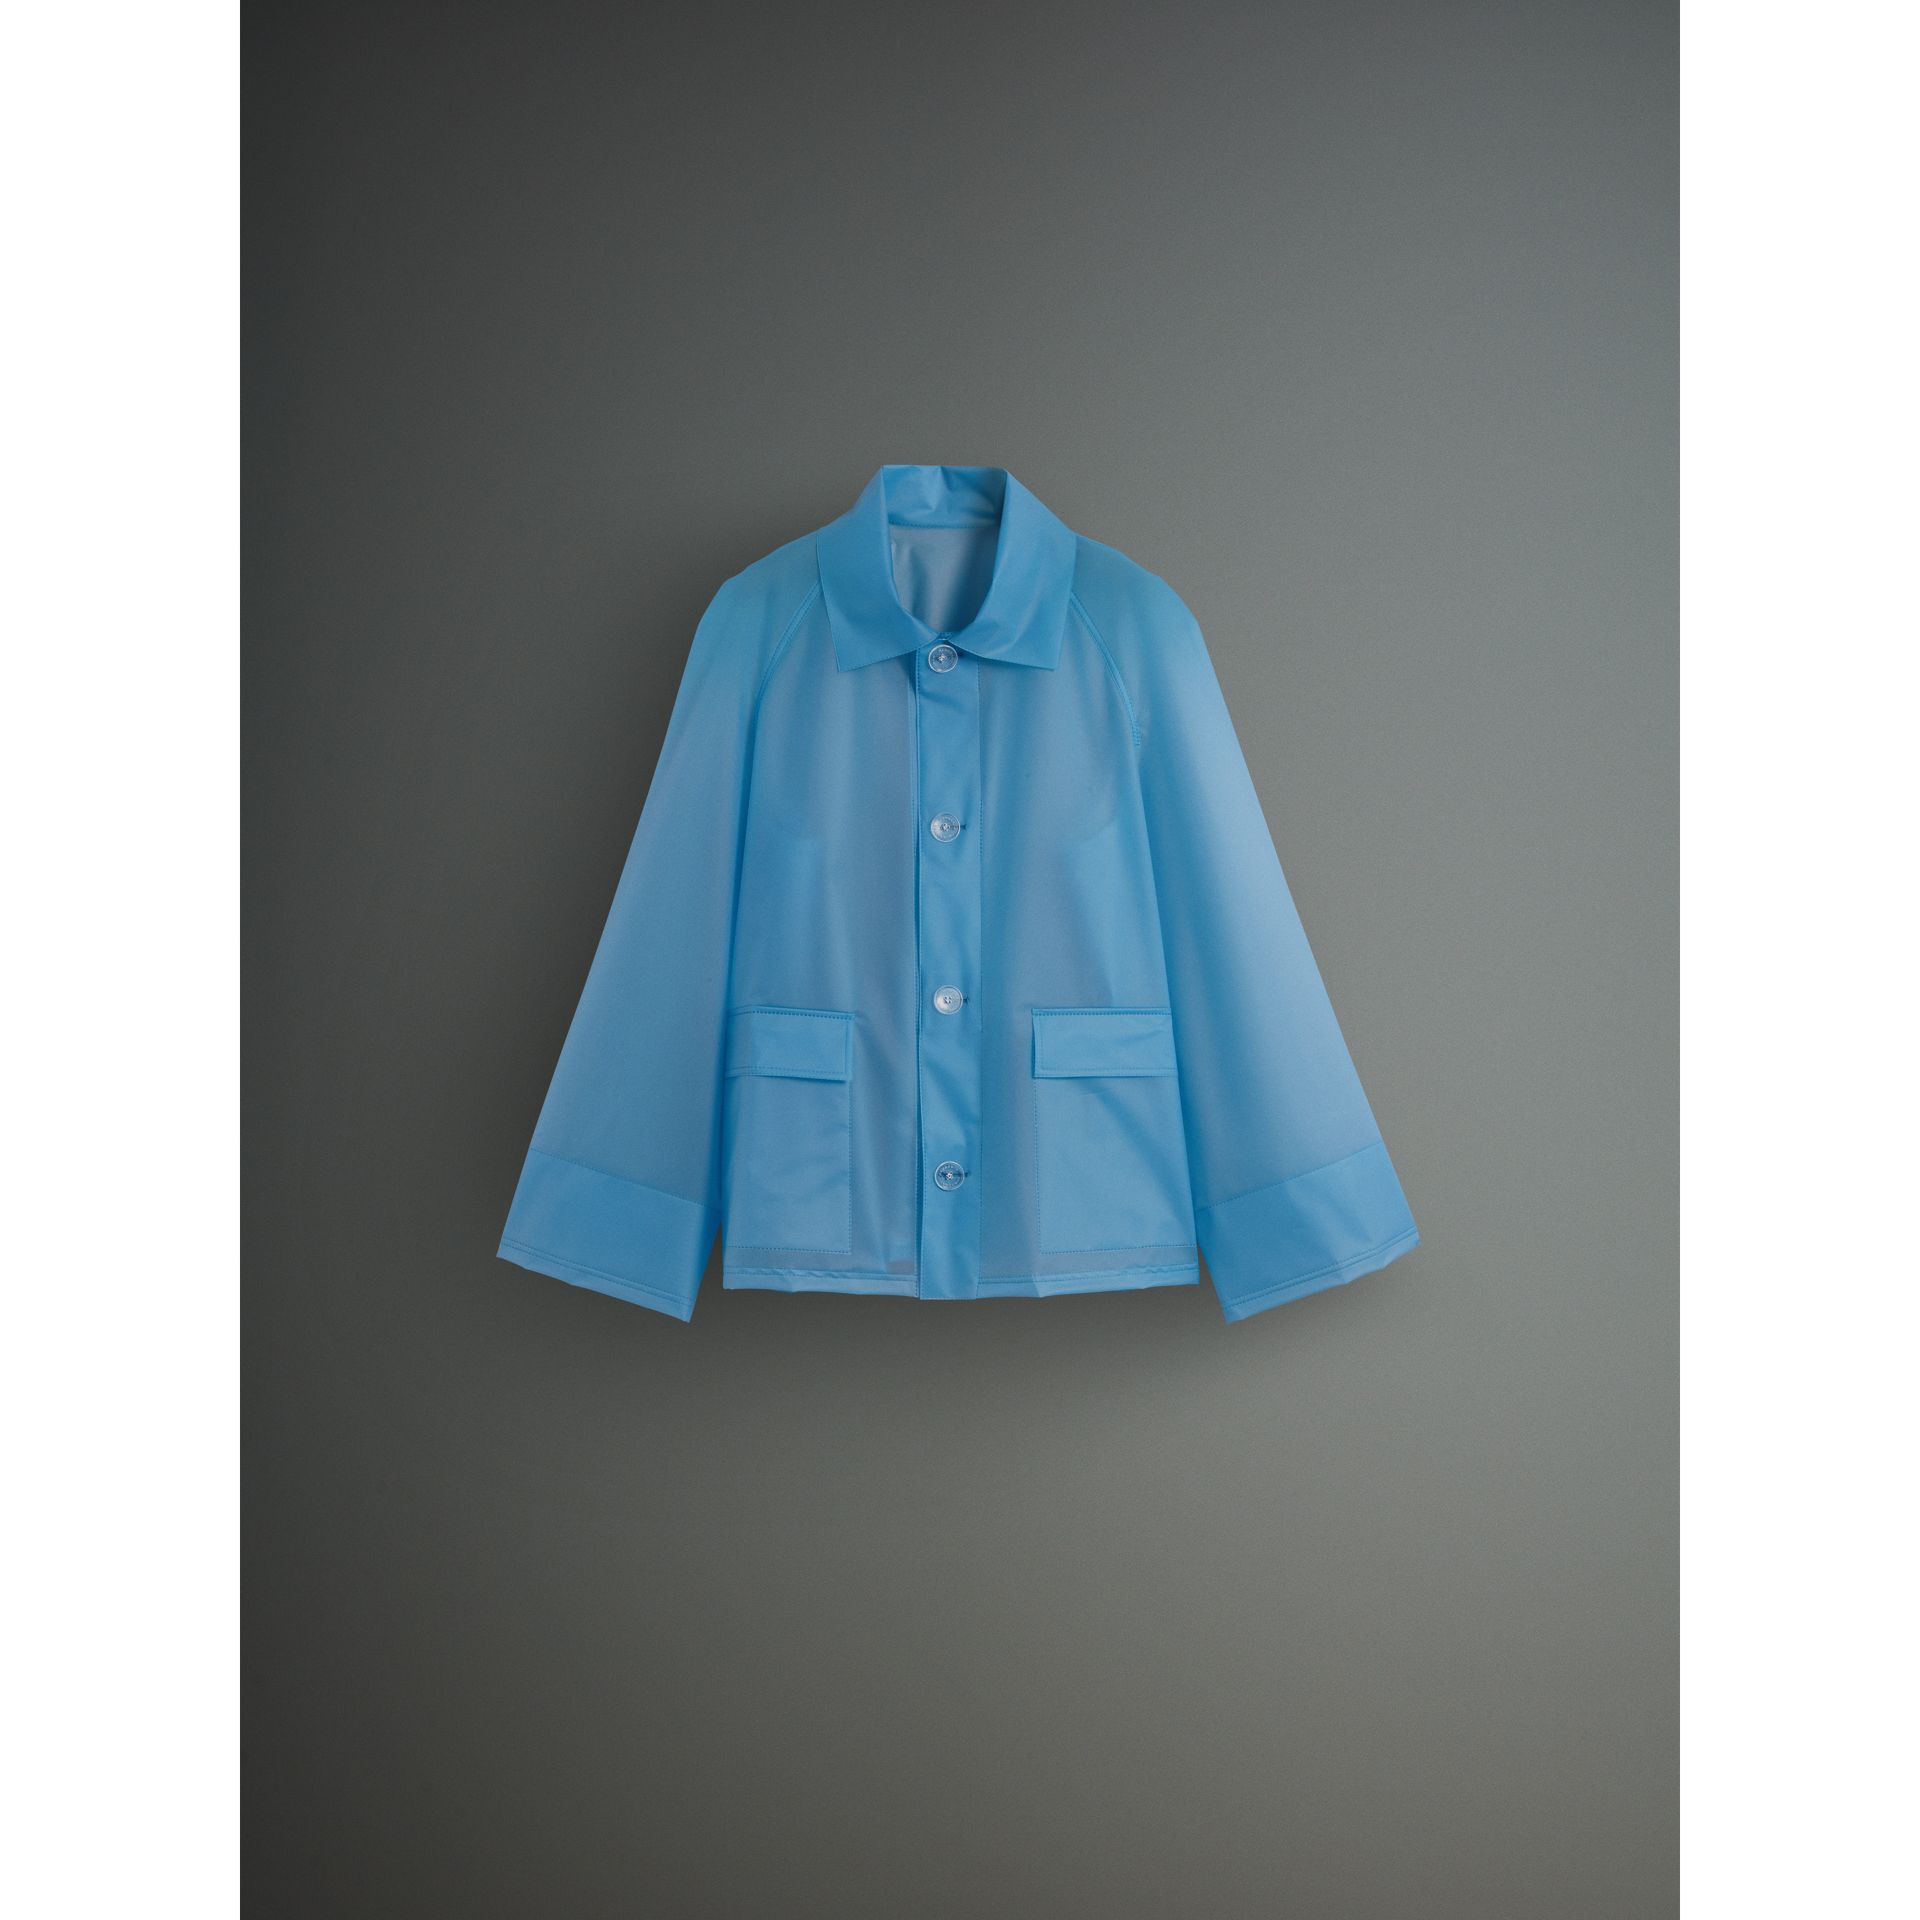 Soft-touch Plastic Jacket in Sky Blue - Men | Burberry - gallery image 3